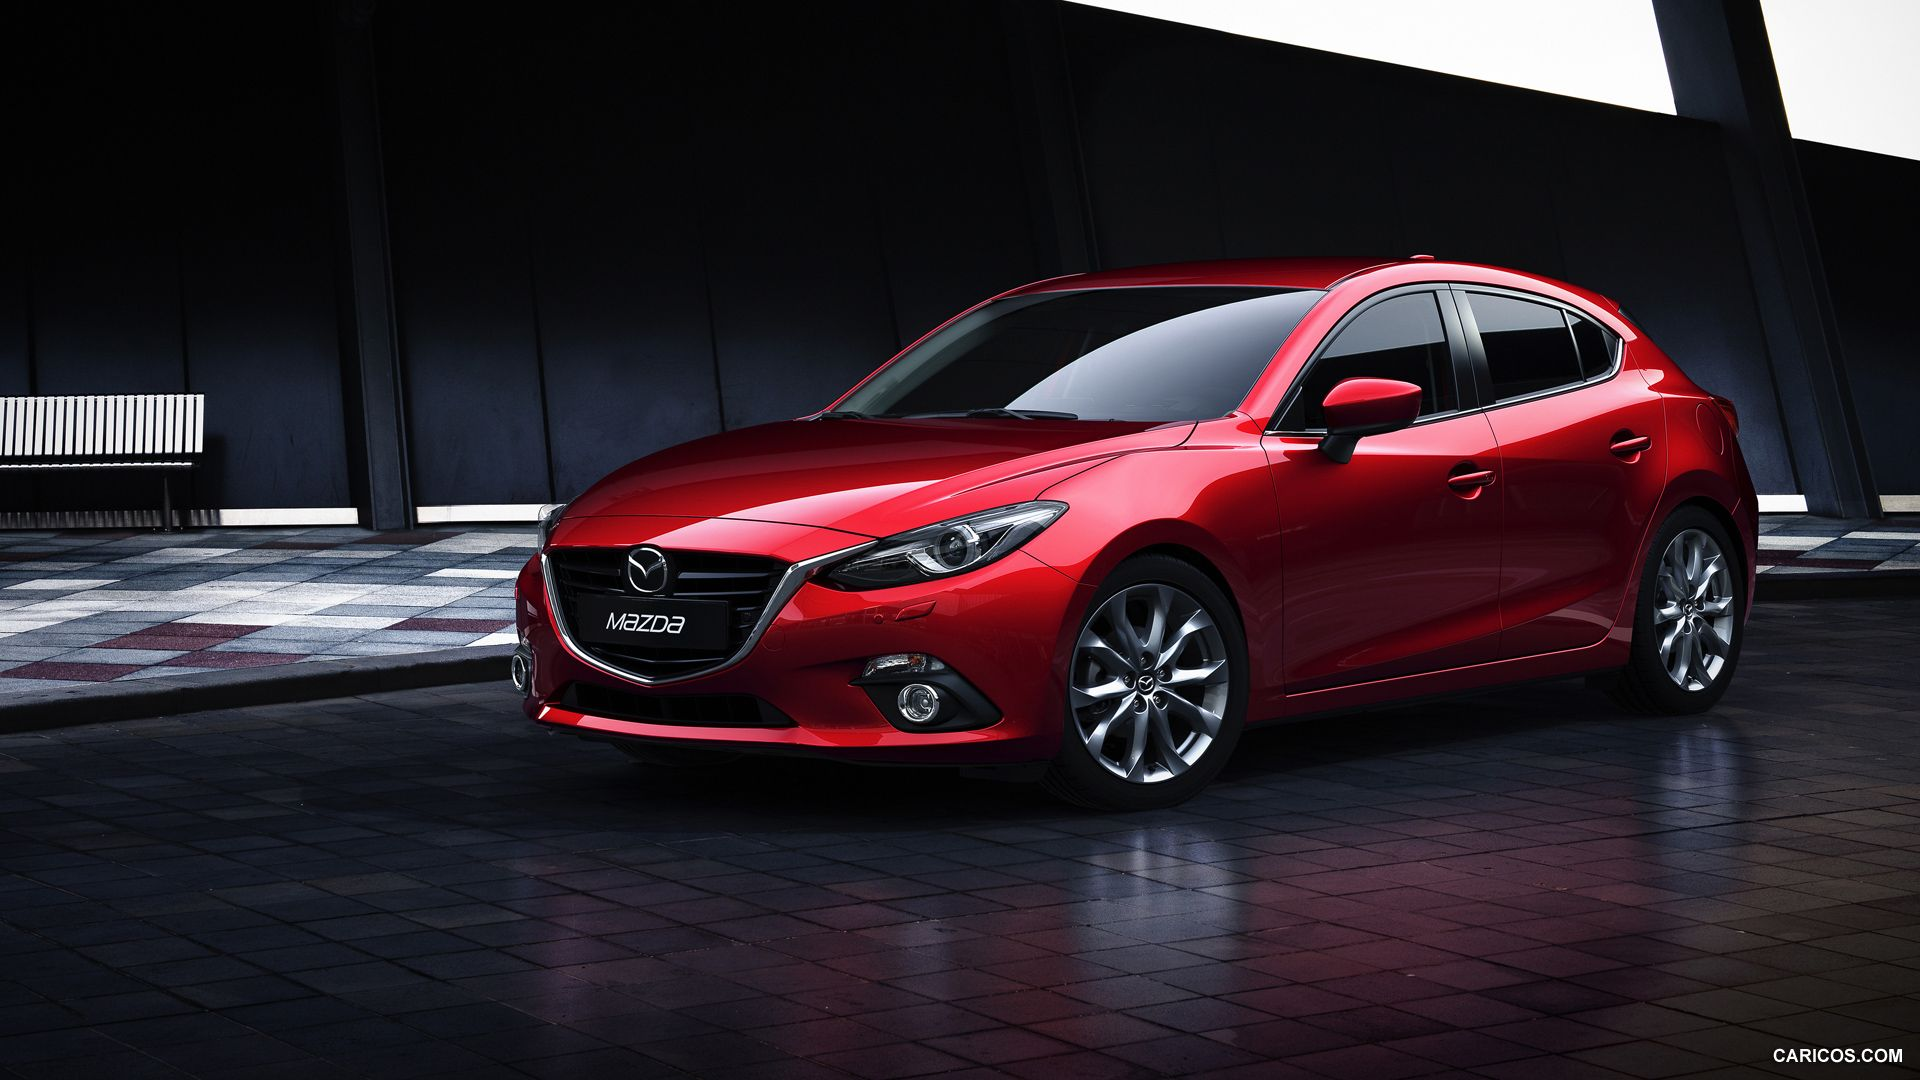 Mazda 3 2014 Red Hatchback // Mazda cars, Hatchback cars